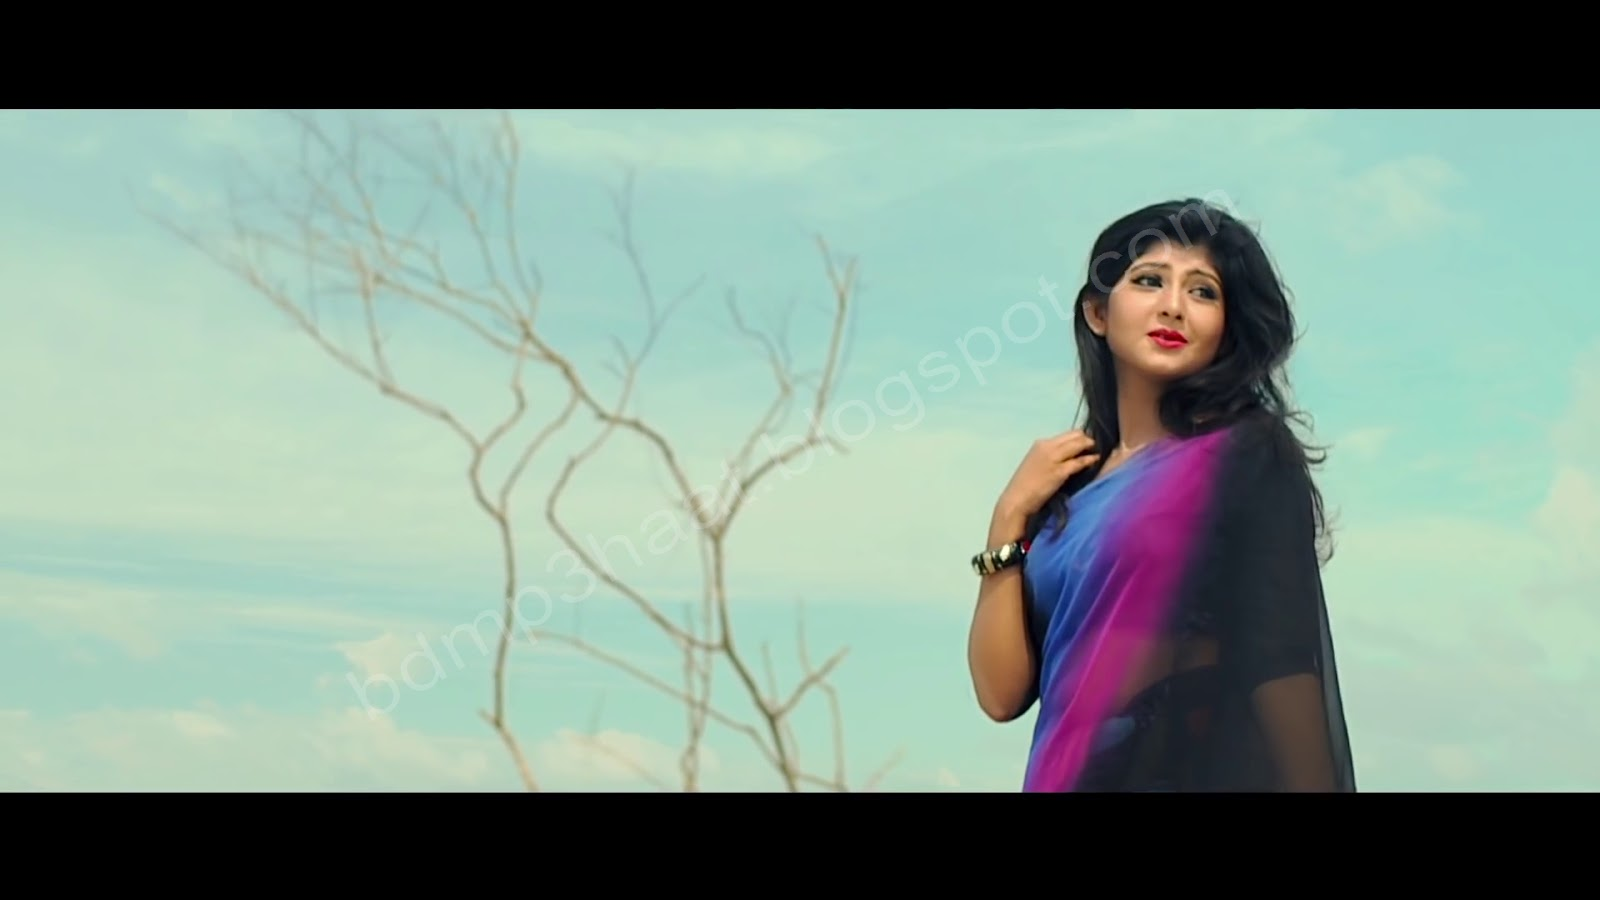 Tomari Maya Belal Khan Moni New Mp4 Video Song 2016 Bangla New Song Free Download Mobo Music Download Site